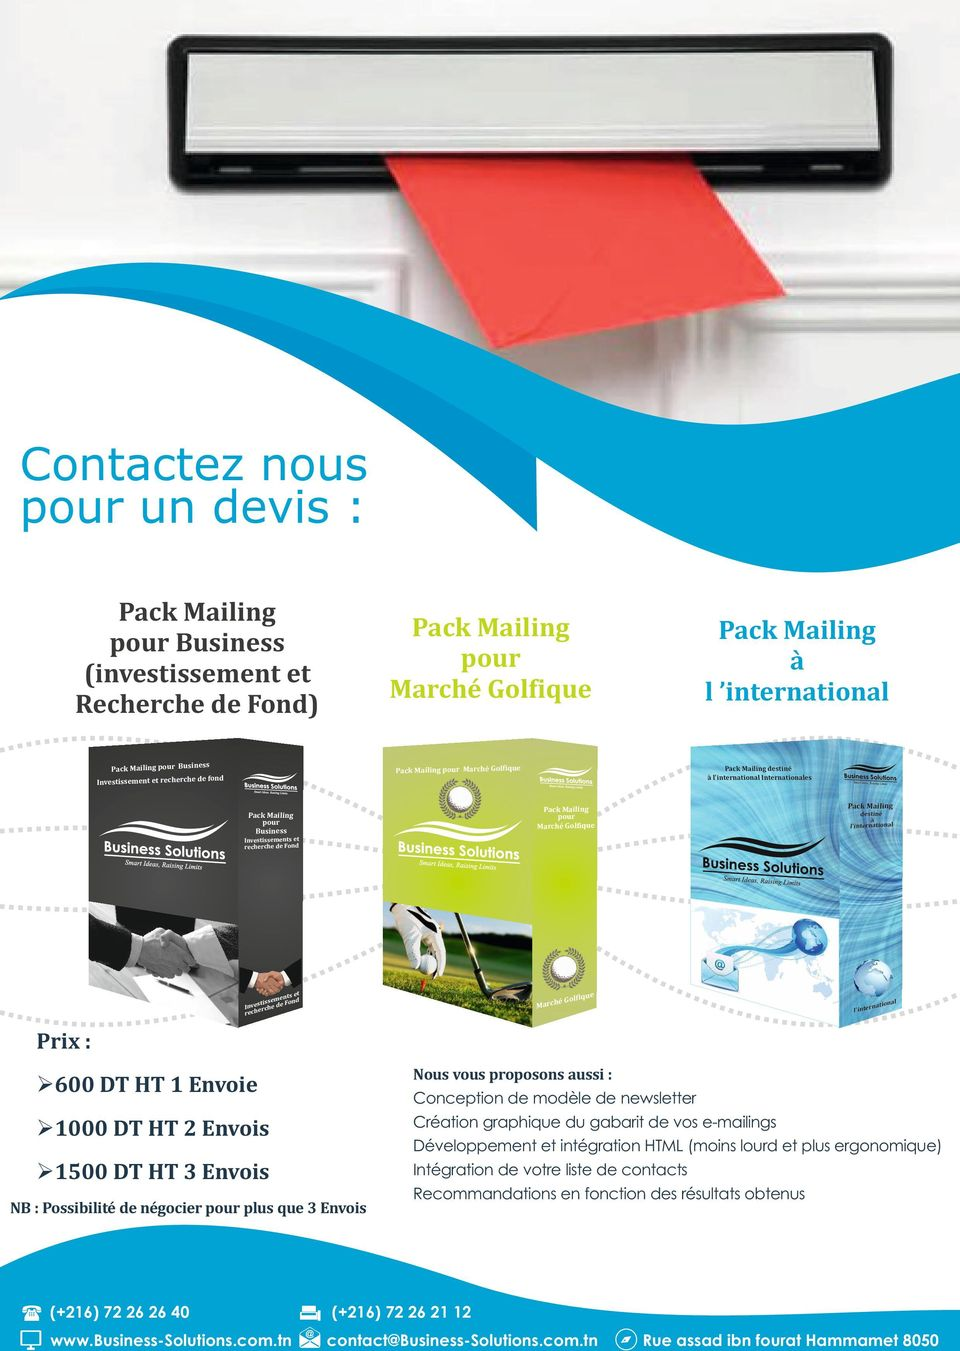 March Pack Mail ing d l'inte estin rnati é onalà Inter natio nale s nal rnatio l'inte Prix : Ø600 DT HT 1 Envoie Ø1000 DT HT 2 Envois Ø1500 DT HT 3 Envois NB : Possibilité de négocier pour plus que 3